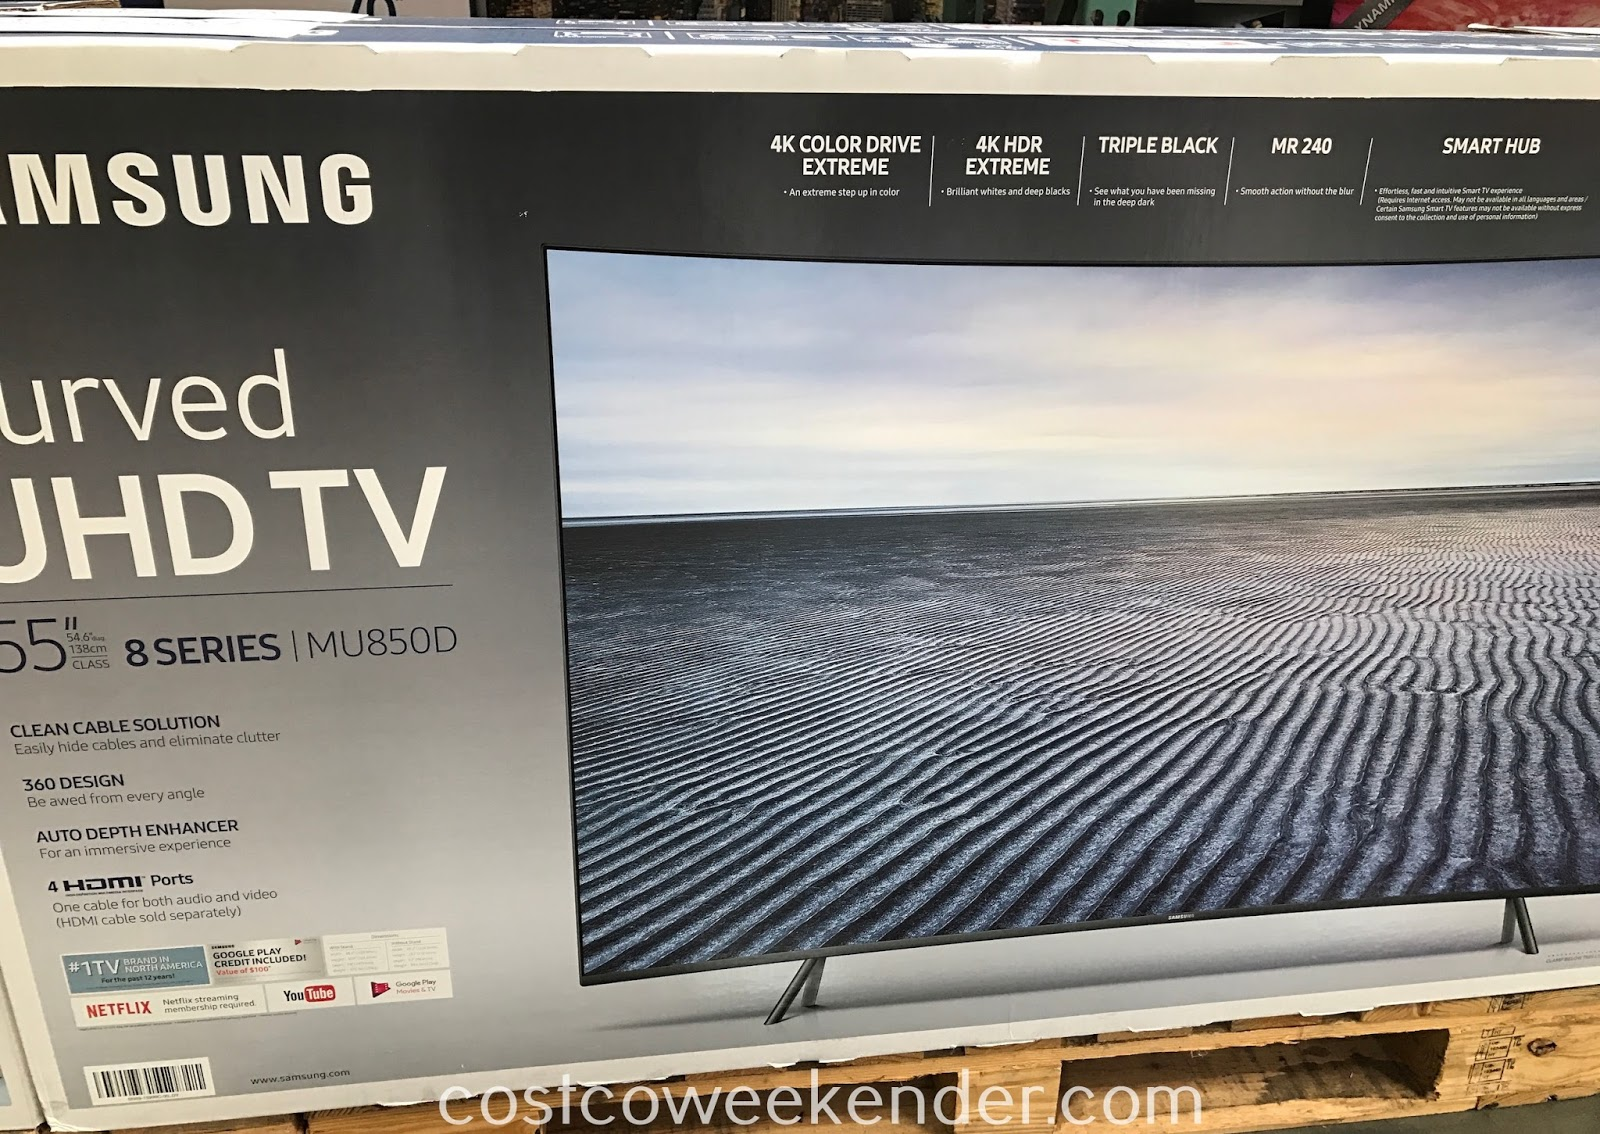 Costco 9558500 - Samsung UN55MU850D Curved 4K Ultra HD tv: a wole new viewing experience